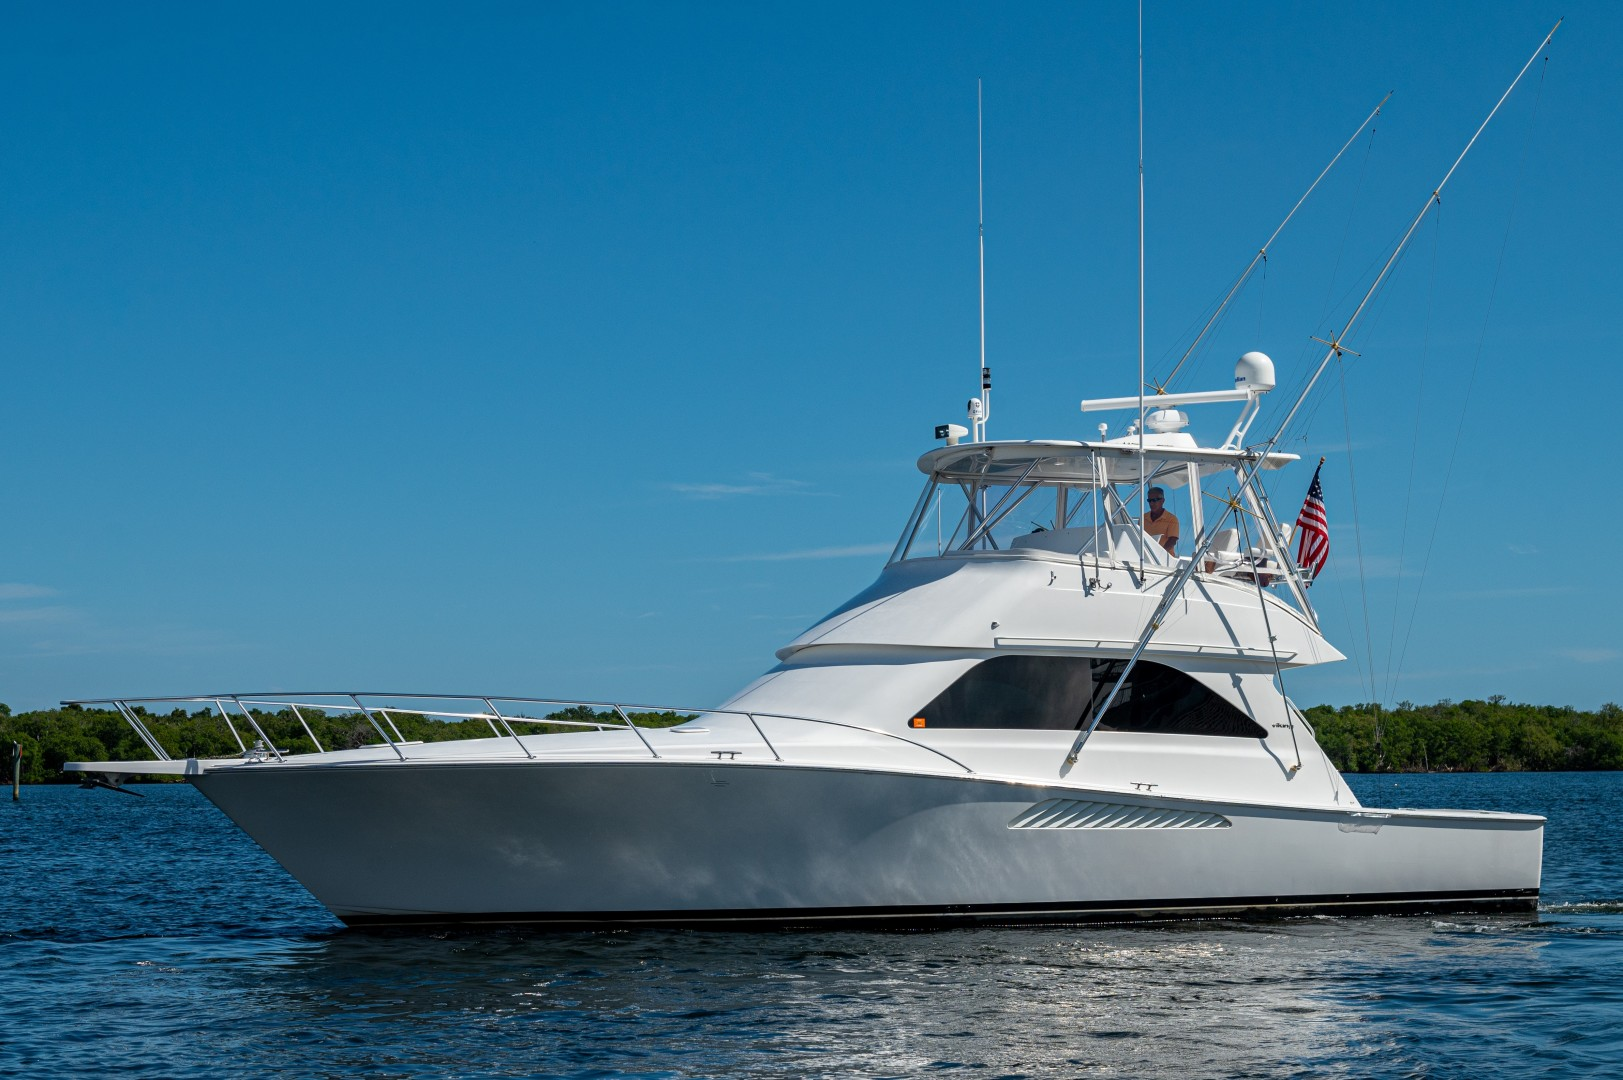 Viking 45 - After Party - Exterior Profile